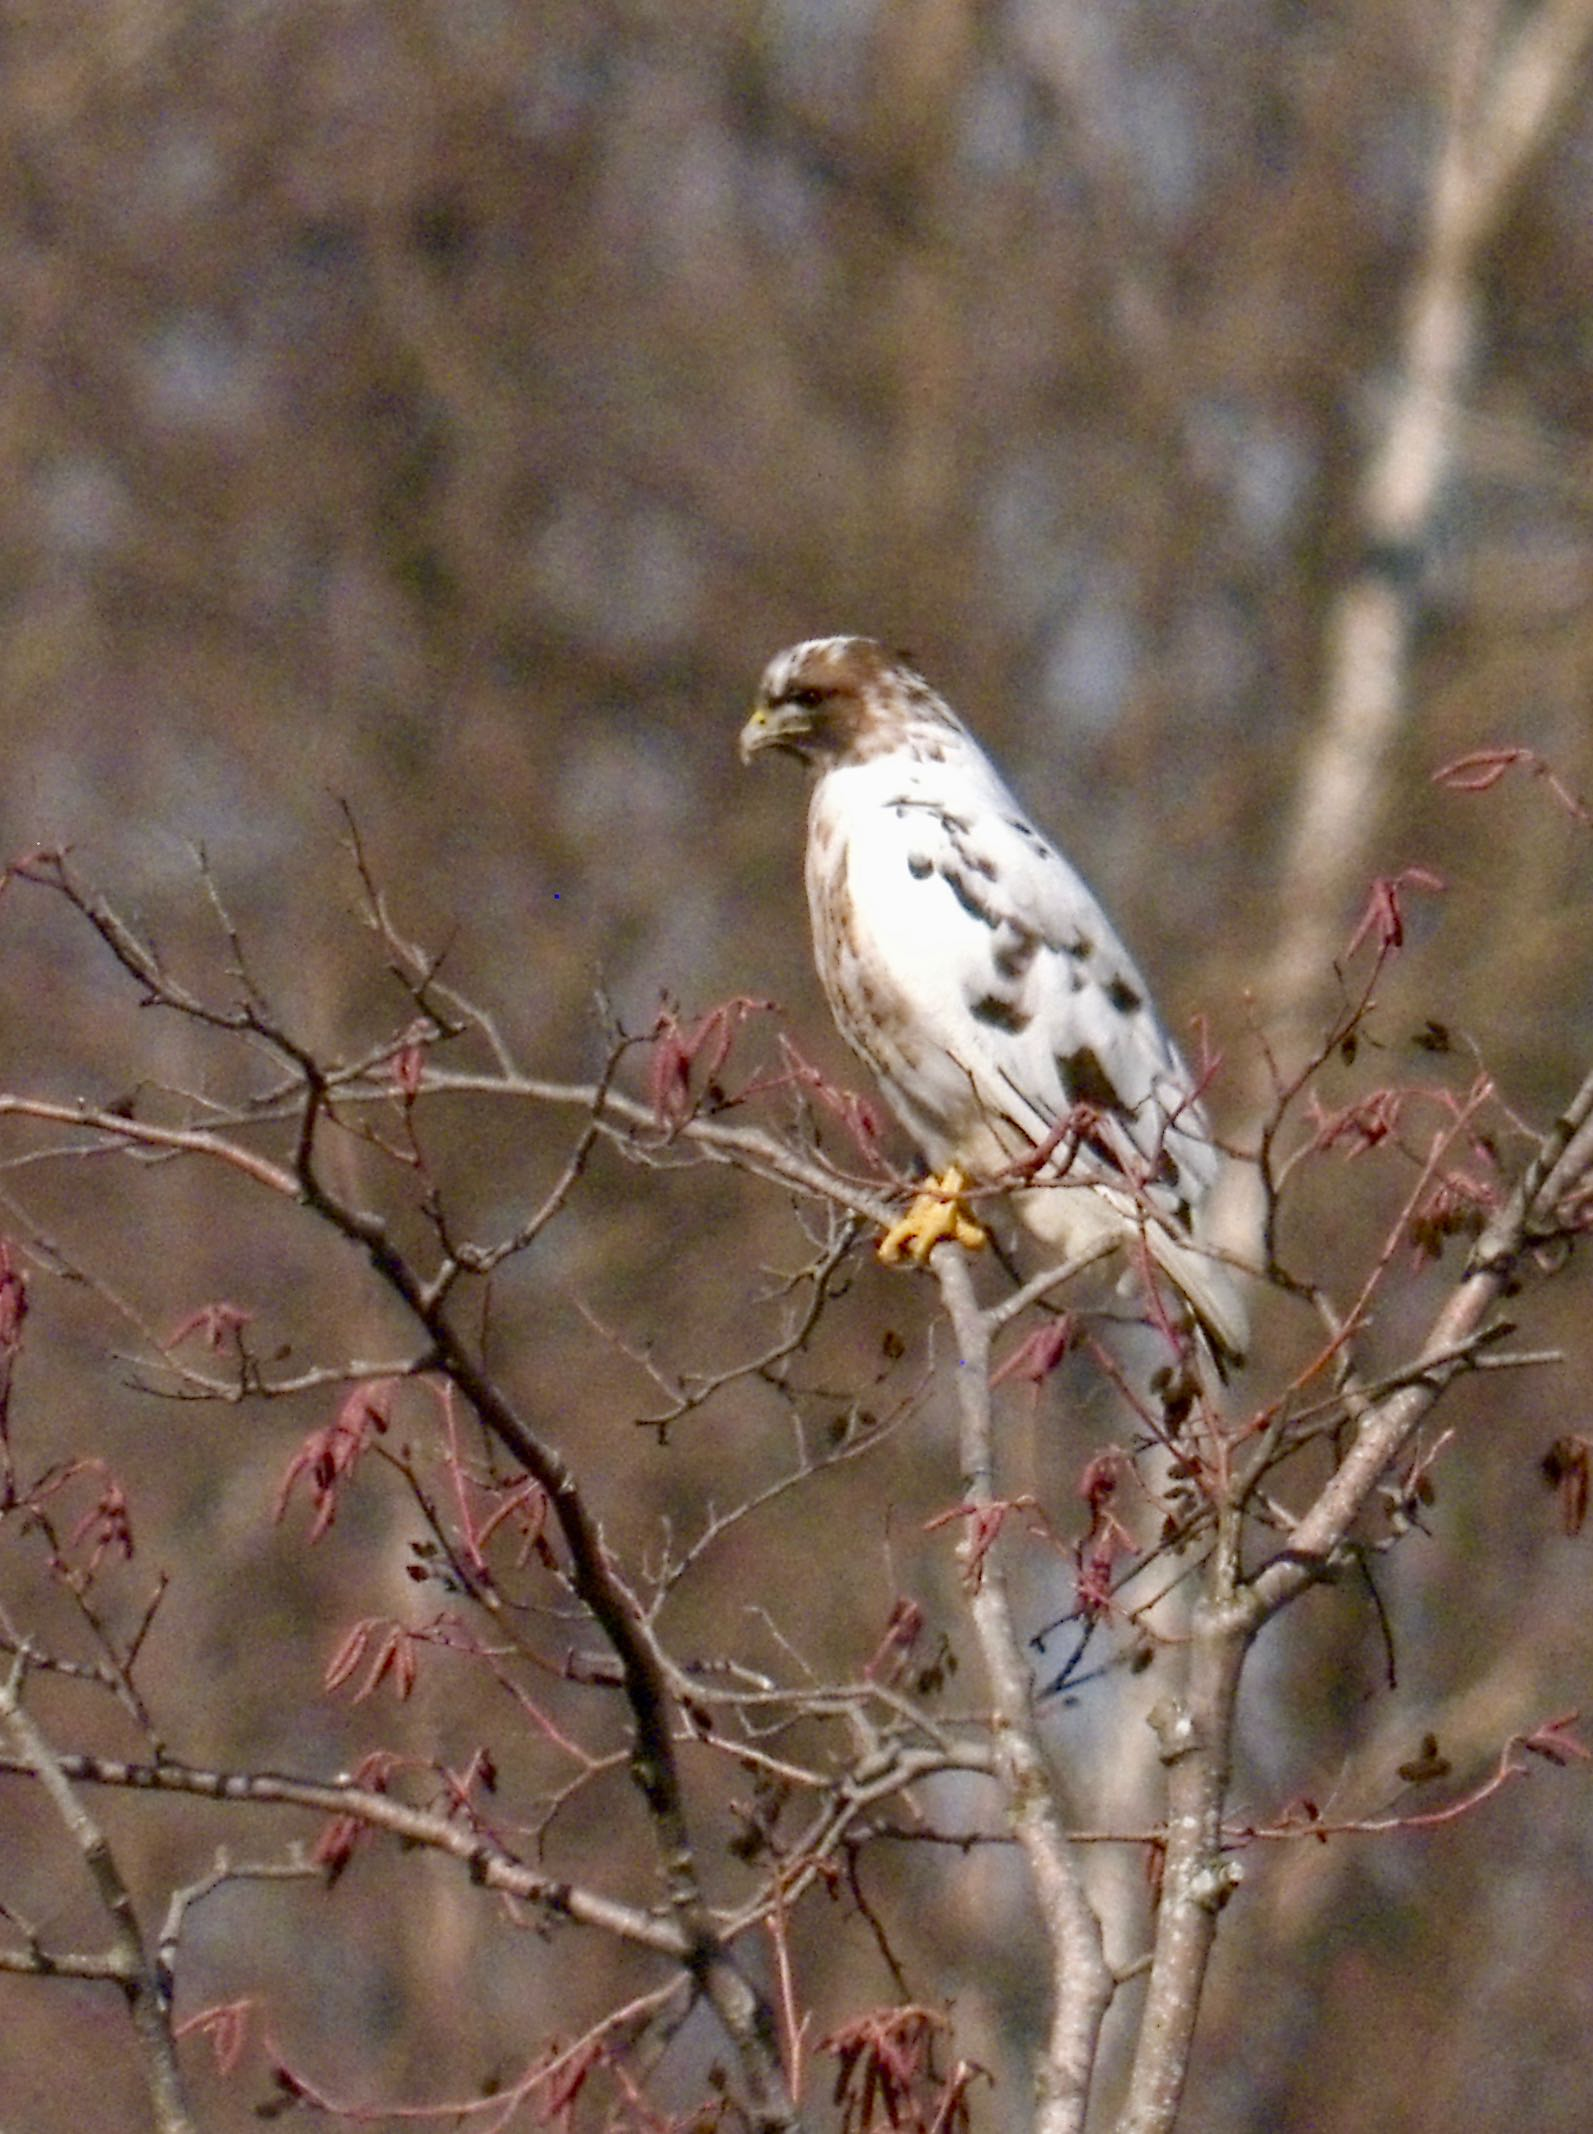 Red tailed hawk leucistic